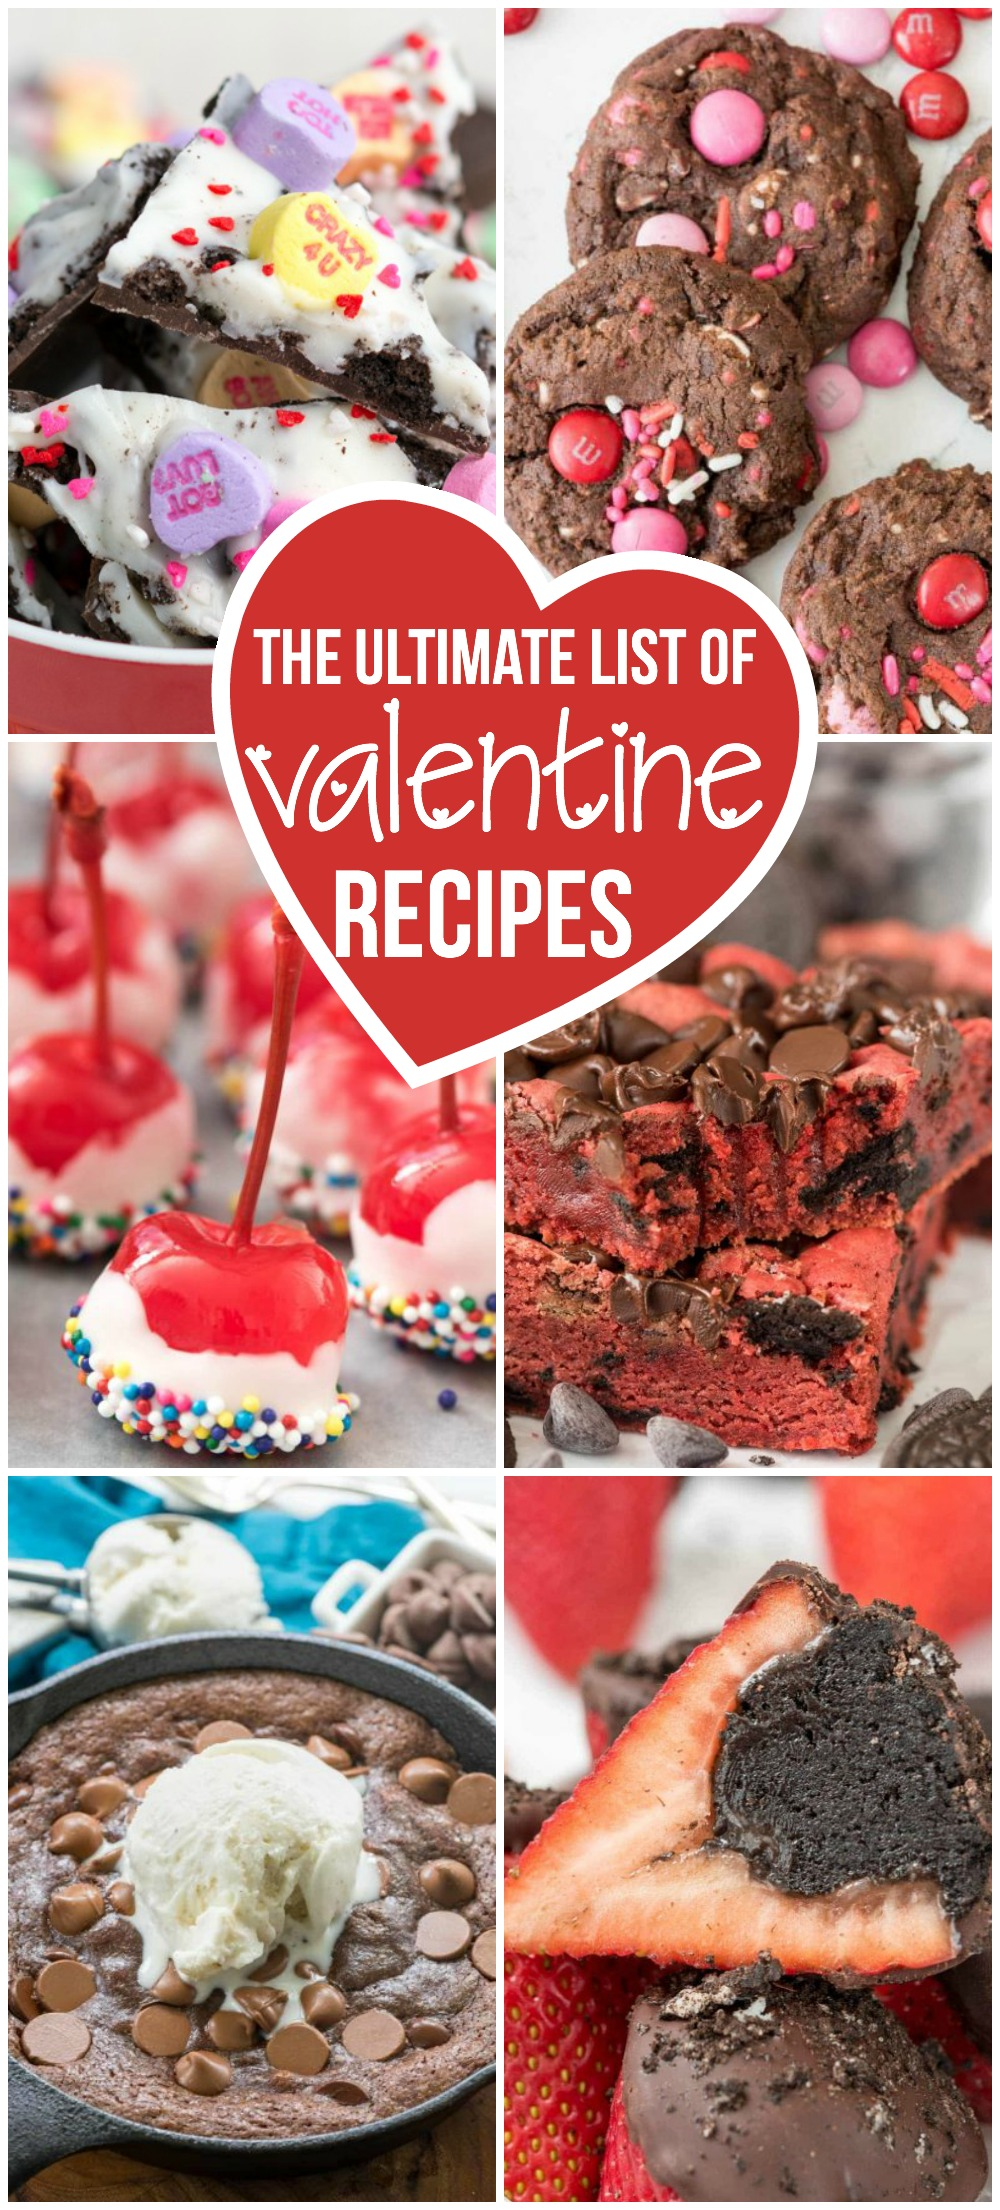 This is the ultimate list of Valentine Recipes!! Champagne, desserts for two, and cute valentine desserts for kids! This list has it all!